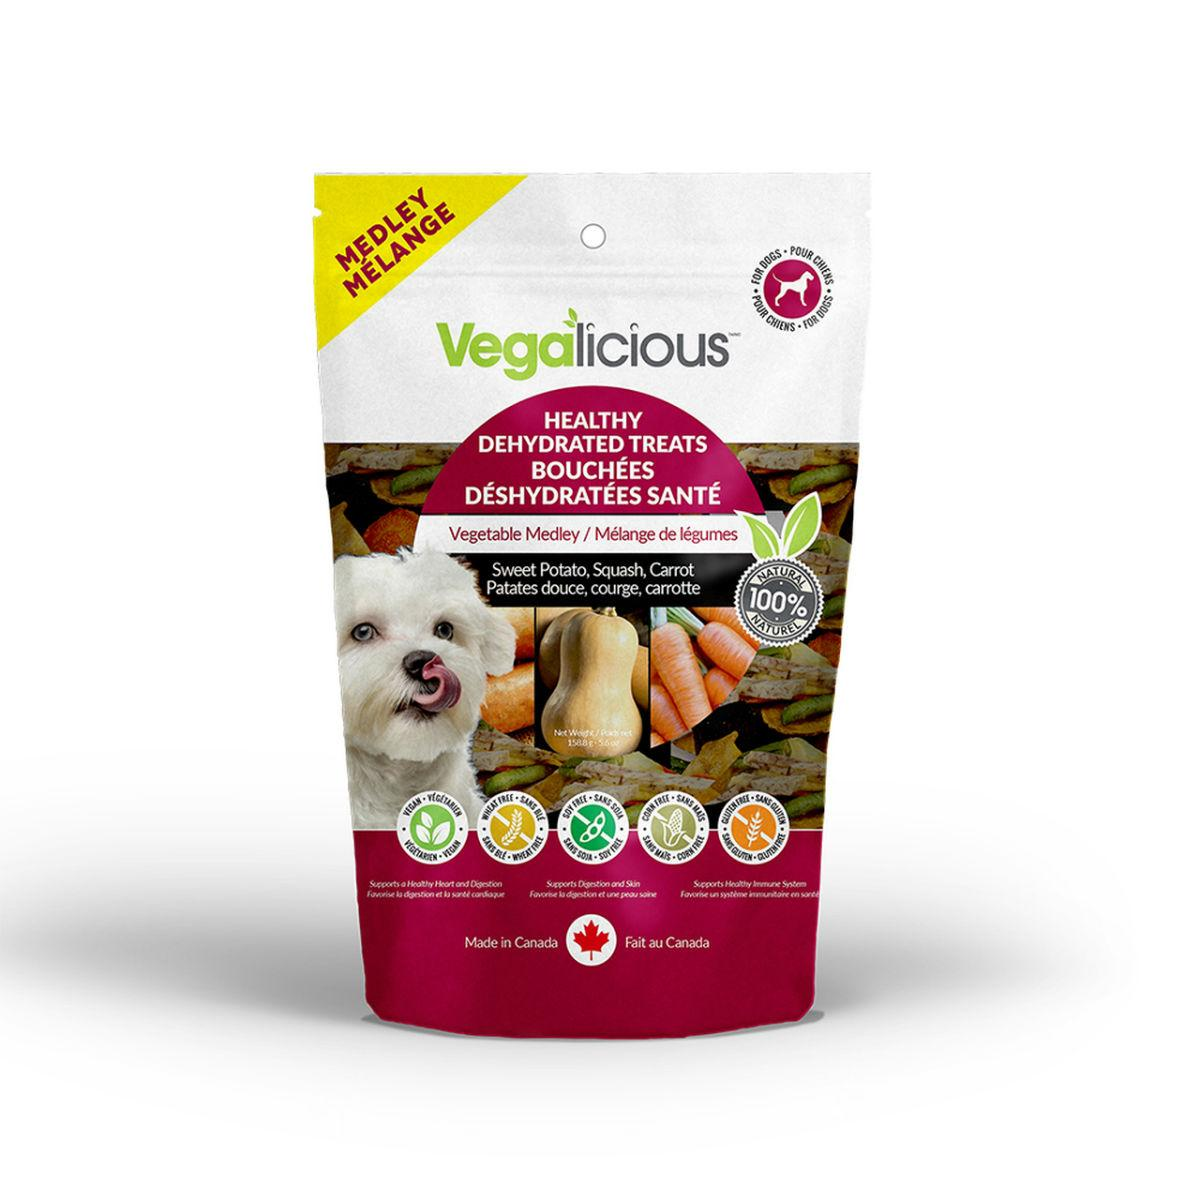 Vegalicious Healthy Dehydrated Vegetable Medley Dog Treat – Sweet Potato, Squash, Carrot